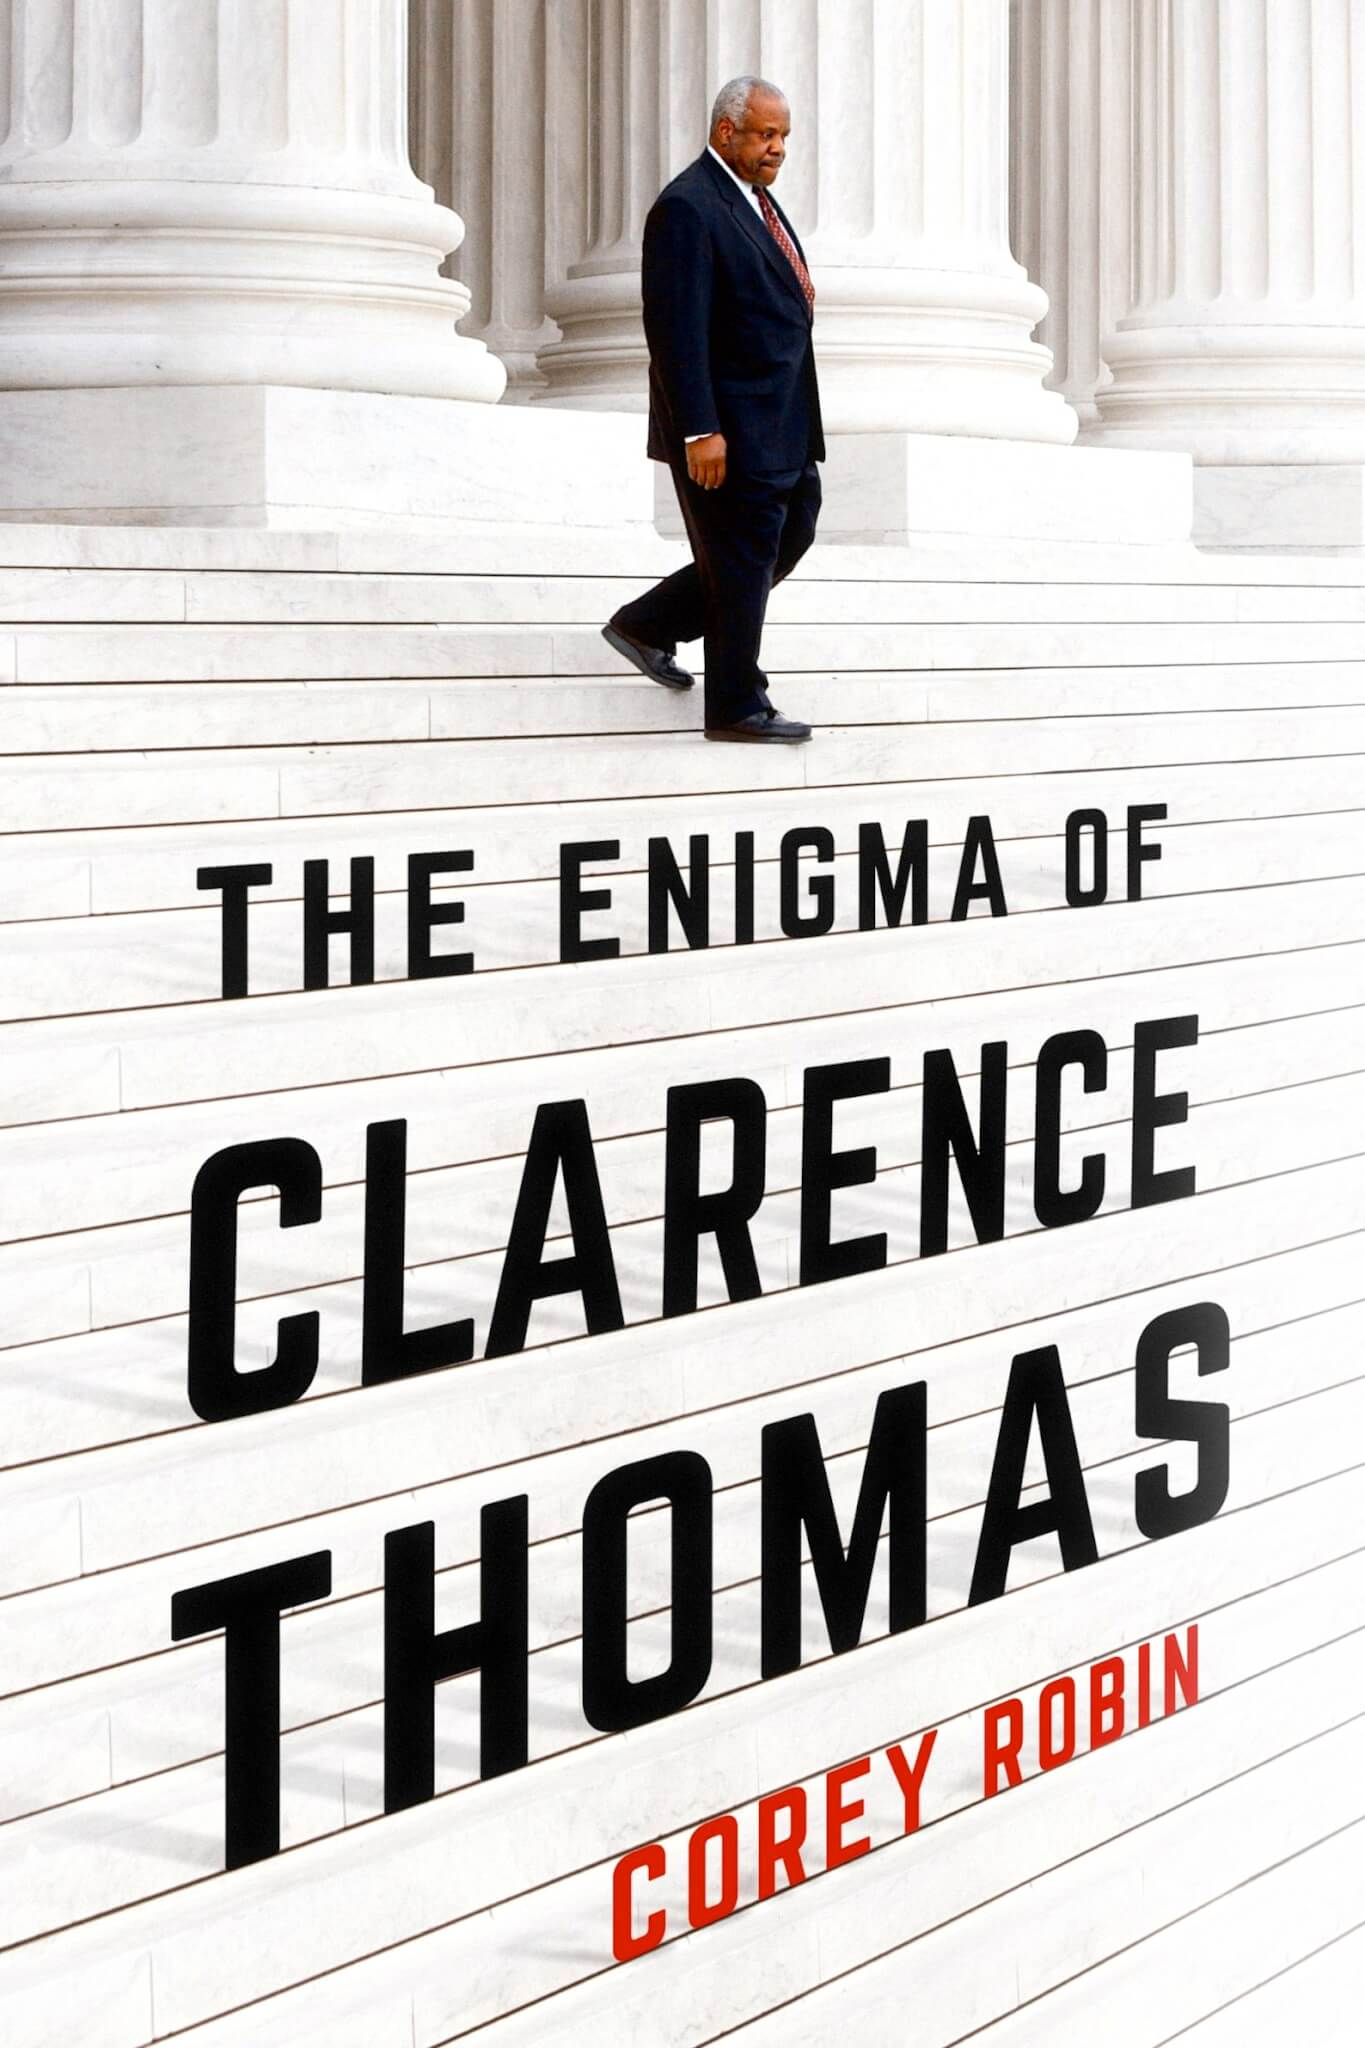 cover of Robin, The Enigma of Clarence Thomas. Metropolitan Books, Henry Holt and Company, 2019.